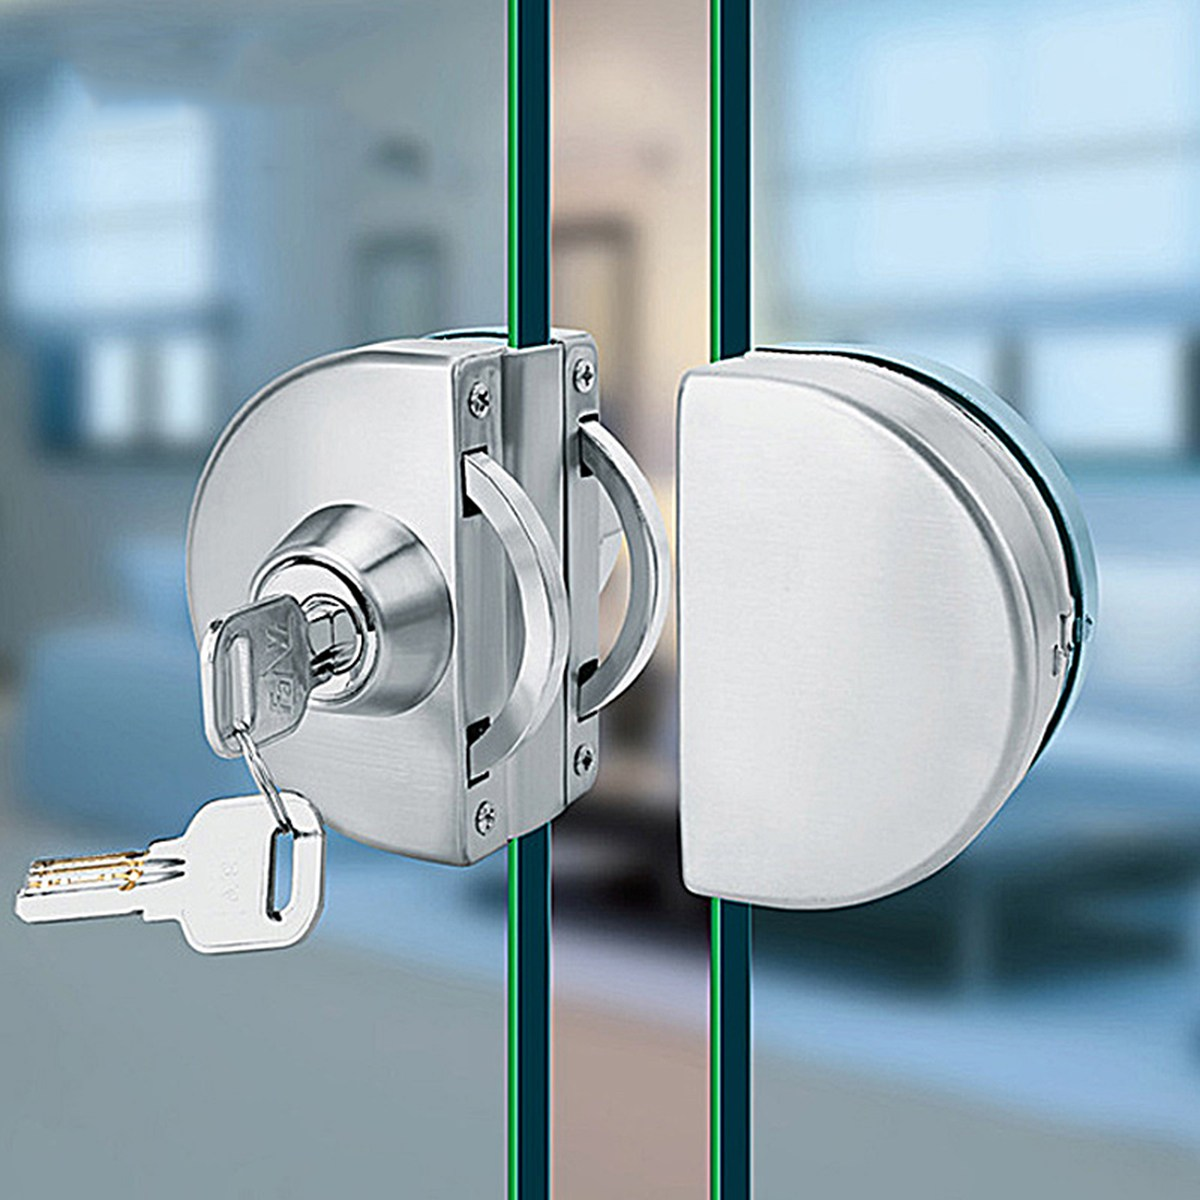 10-12mm Glass Door Lock Stainless Steel Double Bolts Swing Push Sliding Access Control Office Glass Door Lock